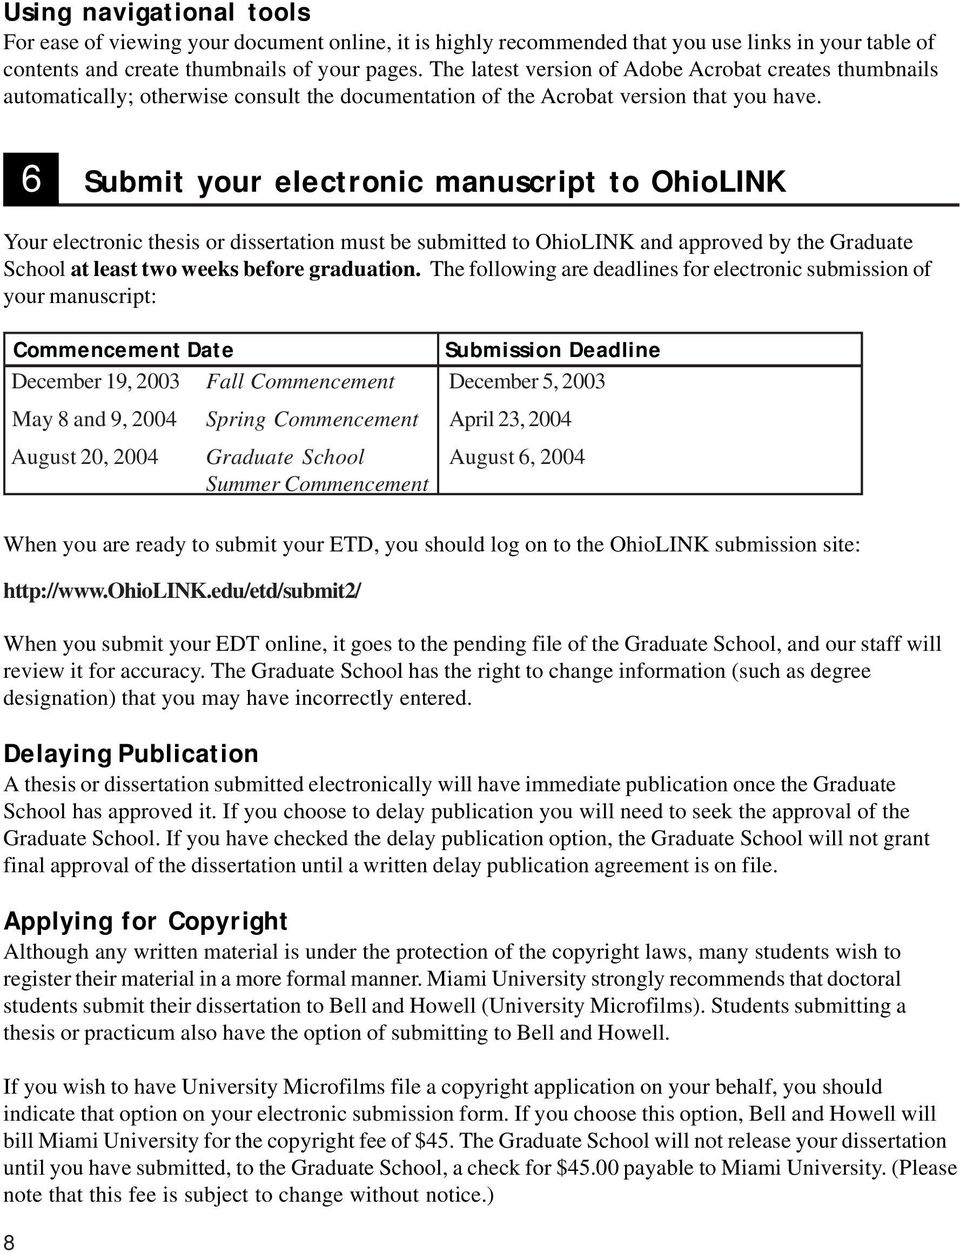 6 Submit your electronic manuscript to OhioLINK Your electronic thesis or dissertation must be submitted to OhioLINK and approved by the Graduate School at least two weeks before graduation.